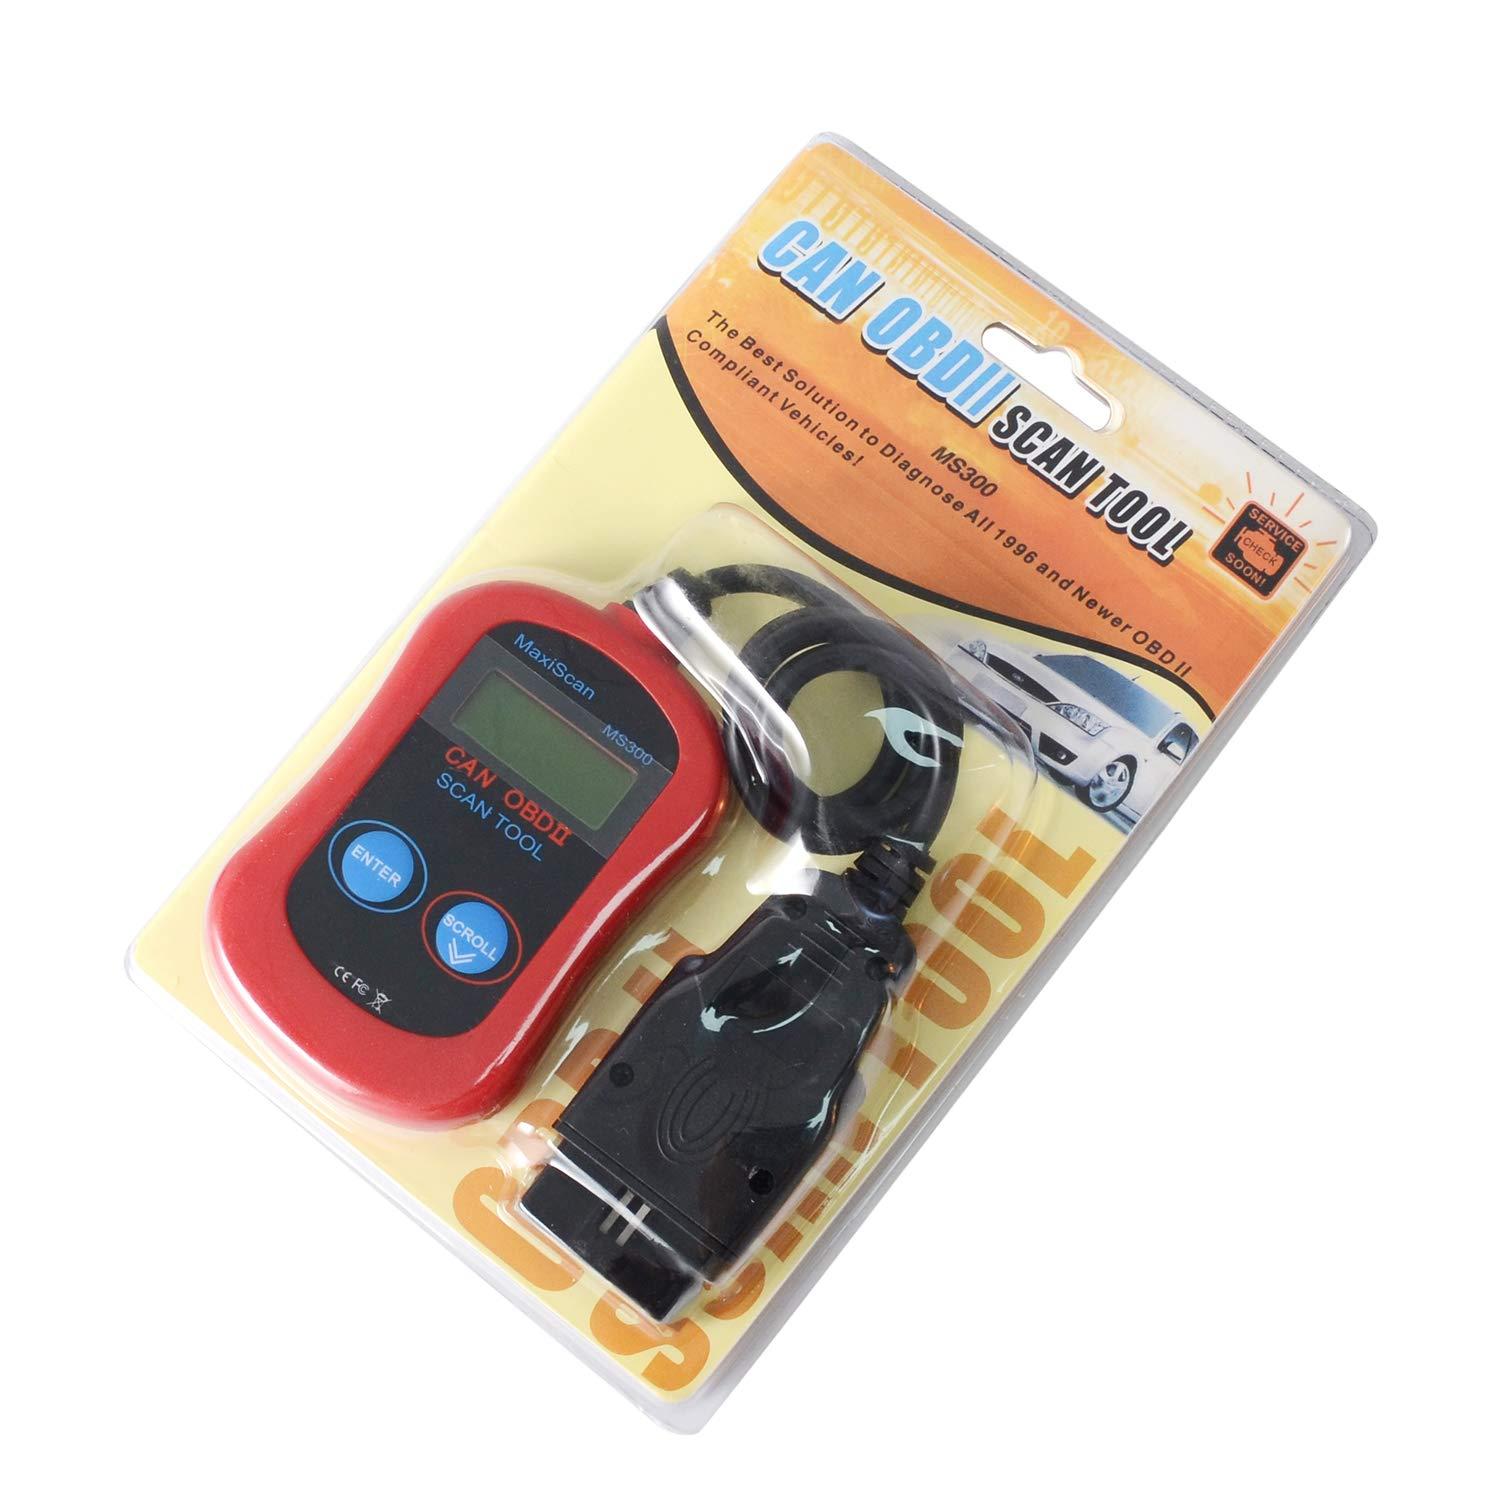 CESHUMD OBD2 Scanner Auto Car OBDii 2 Code Reader Can Diagnostic Scan Handheld Tool Check Engine Light Trouble Codes Vehicle